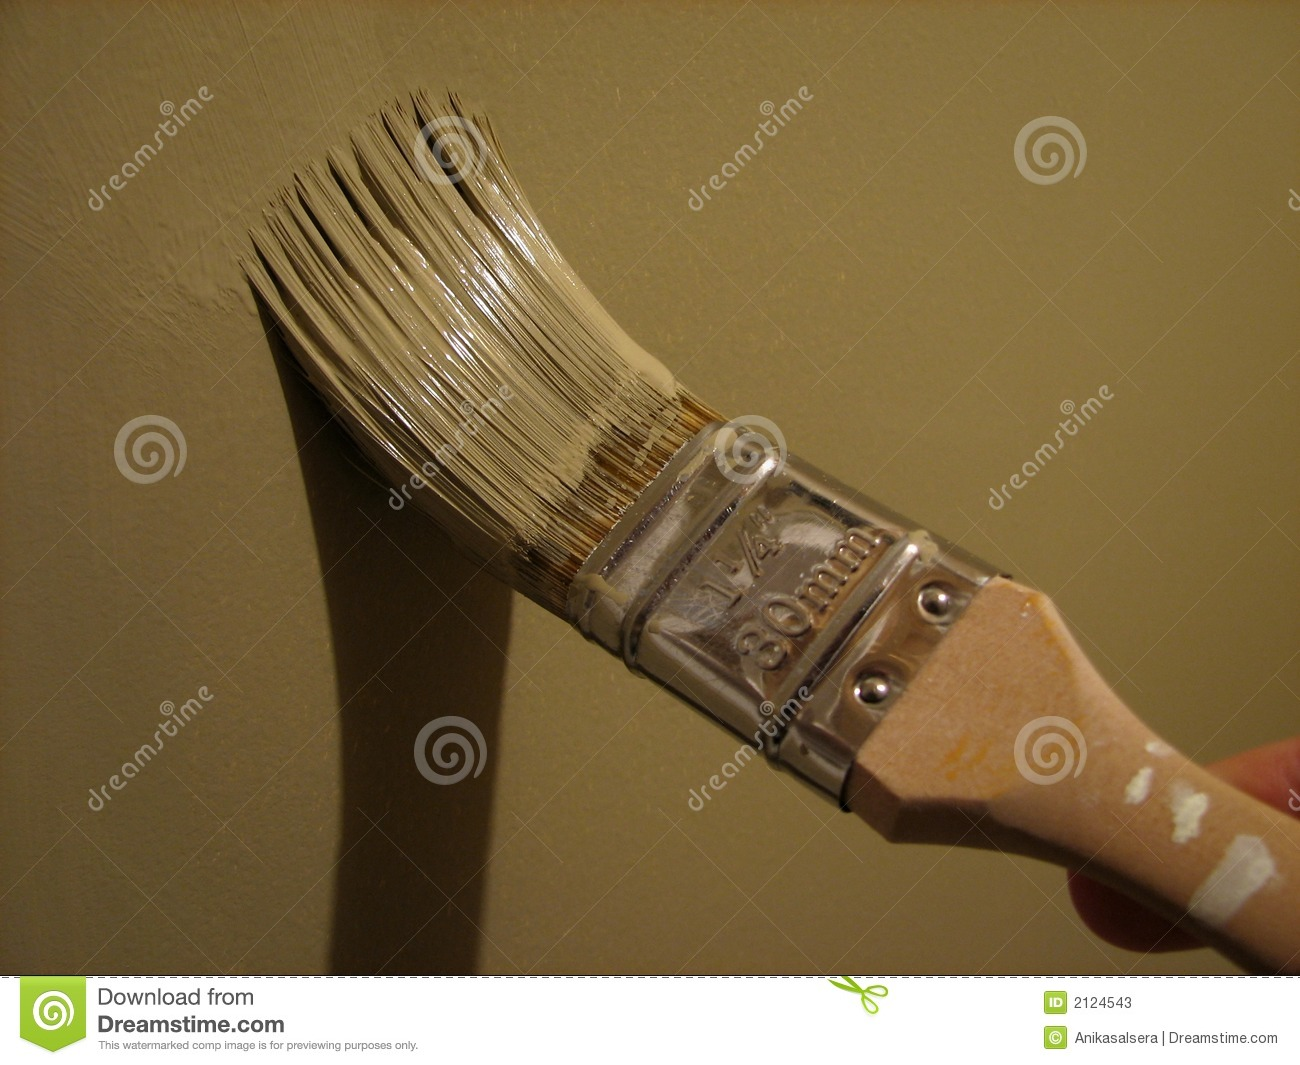 how to clean water based paint brushes